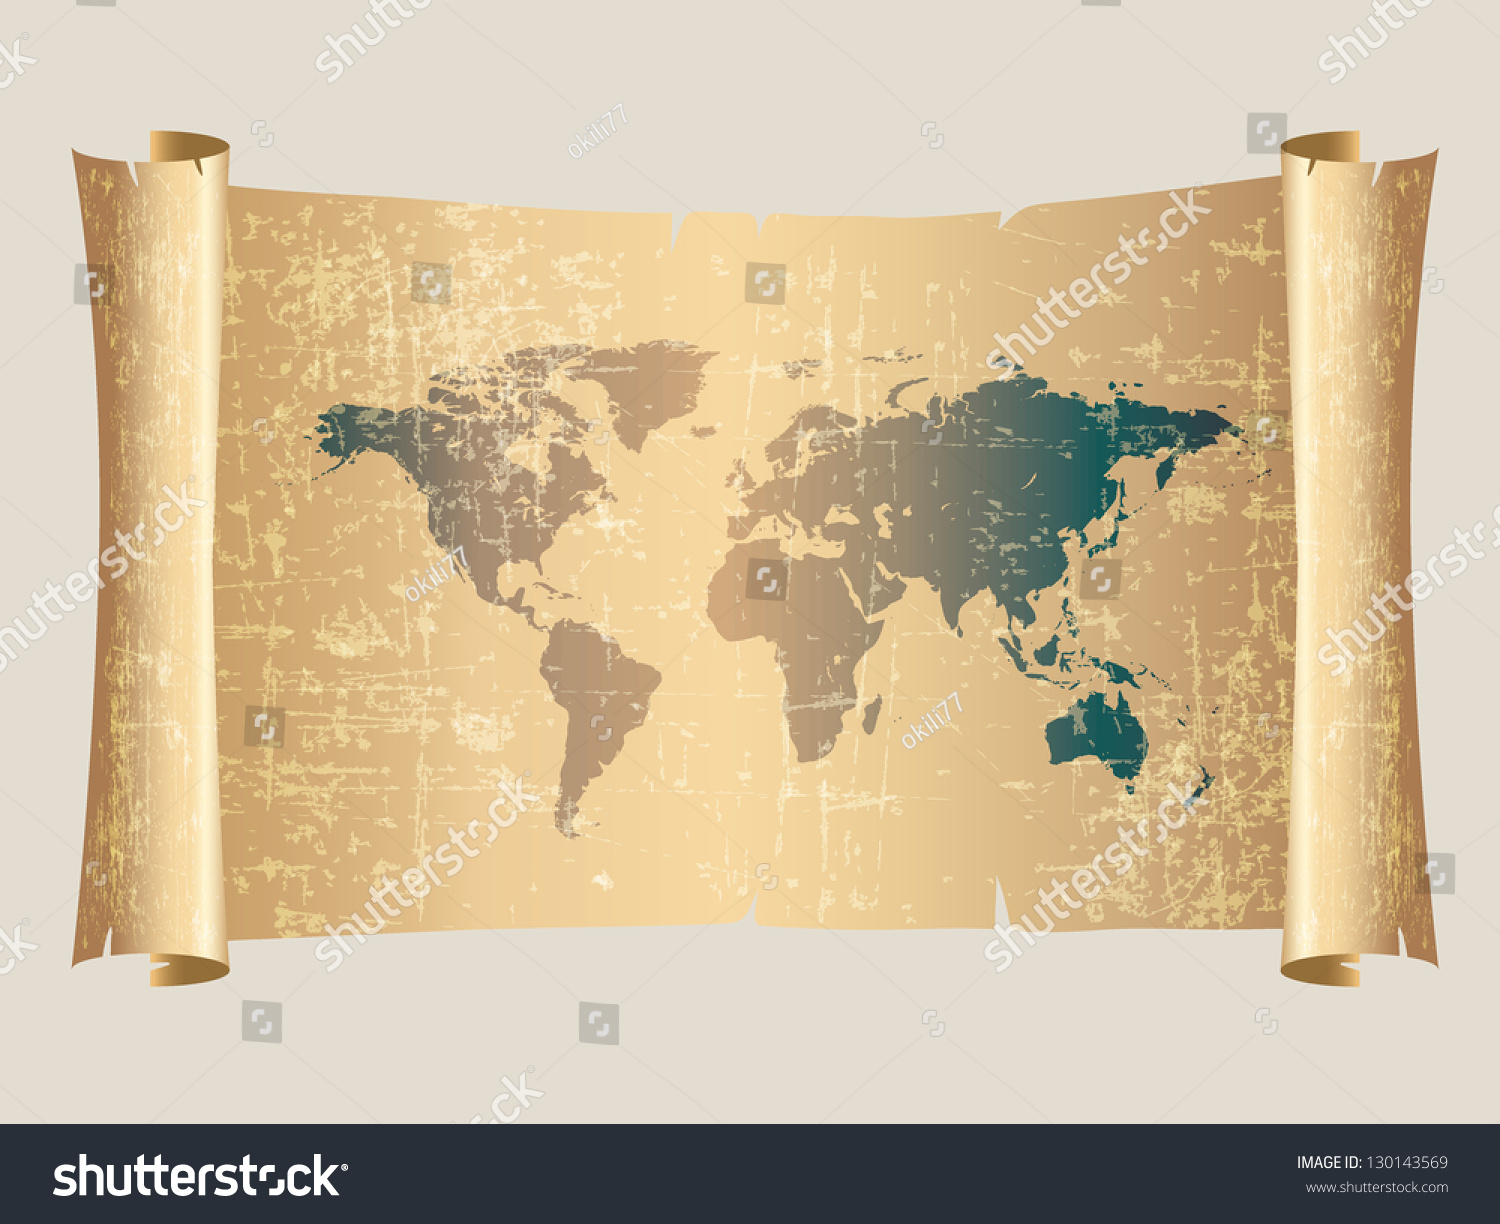 World map vintage style on scroll stock vector 130143569 world map vintage style on scroll parchment gumiabroncs Gallery